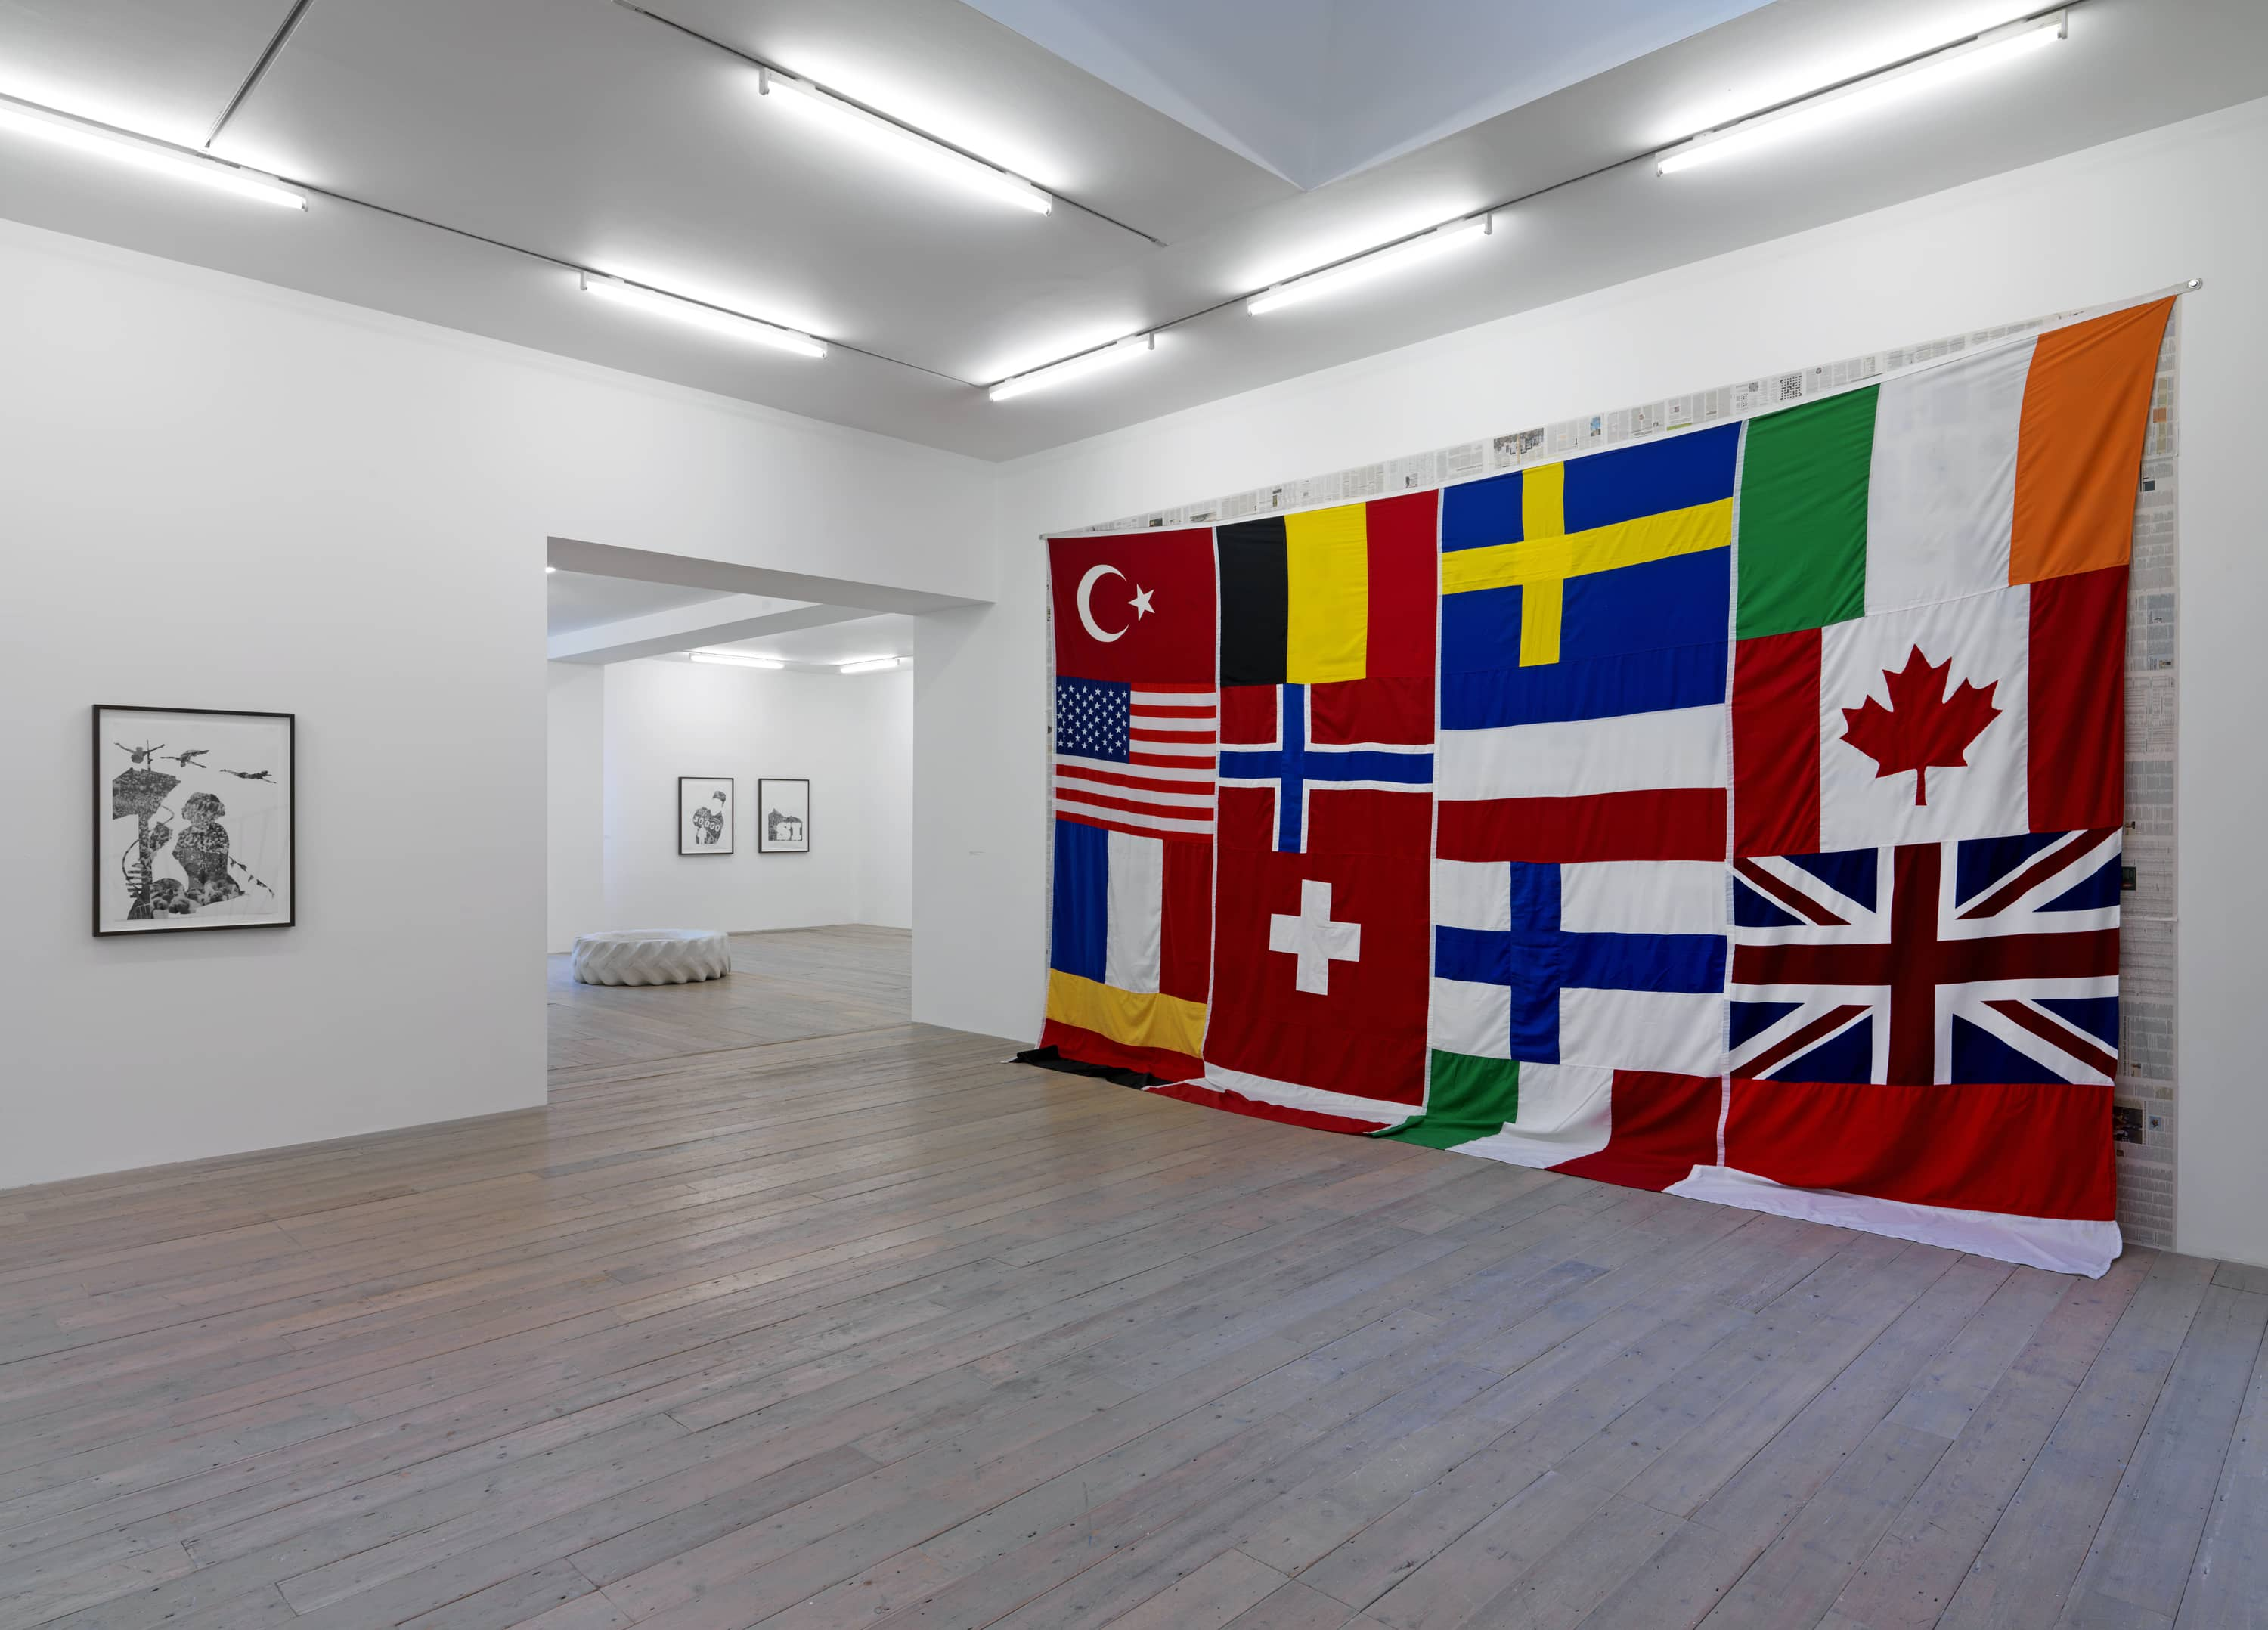 Installation view: Asier Mendizabal, Raven Row, London, 2011 |  | ProjecteSD